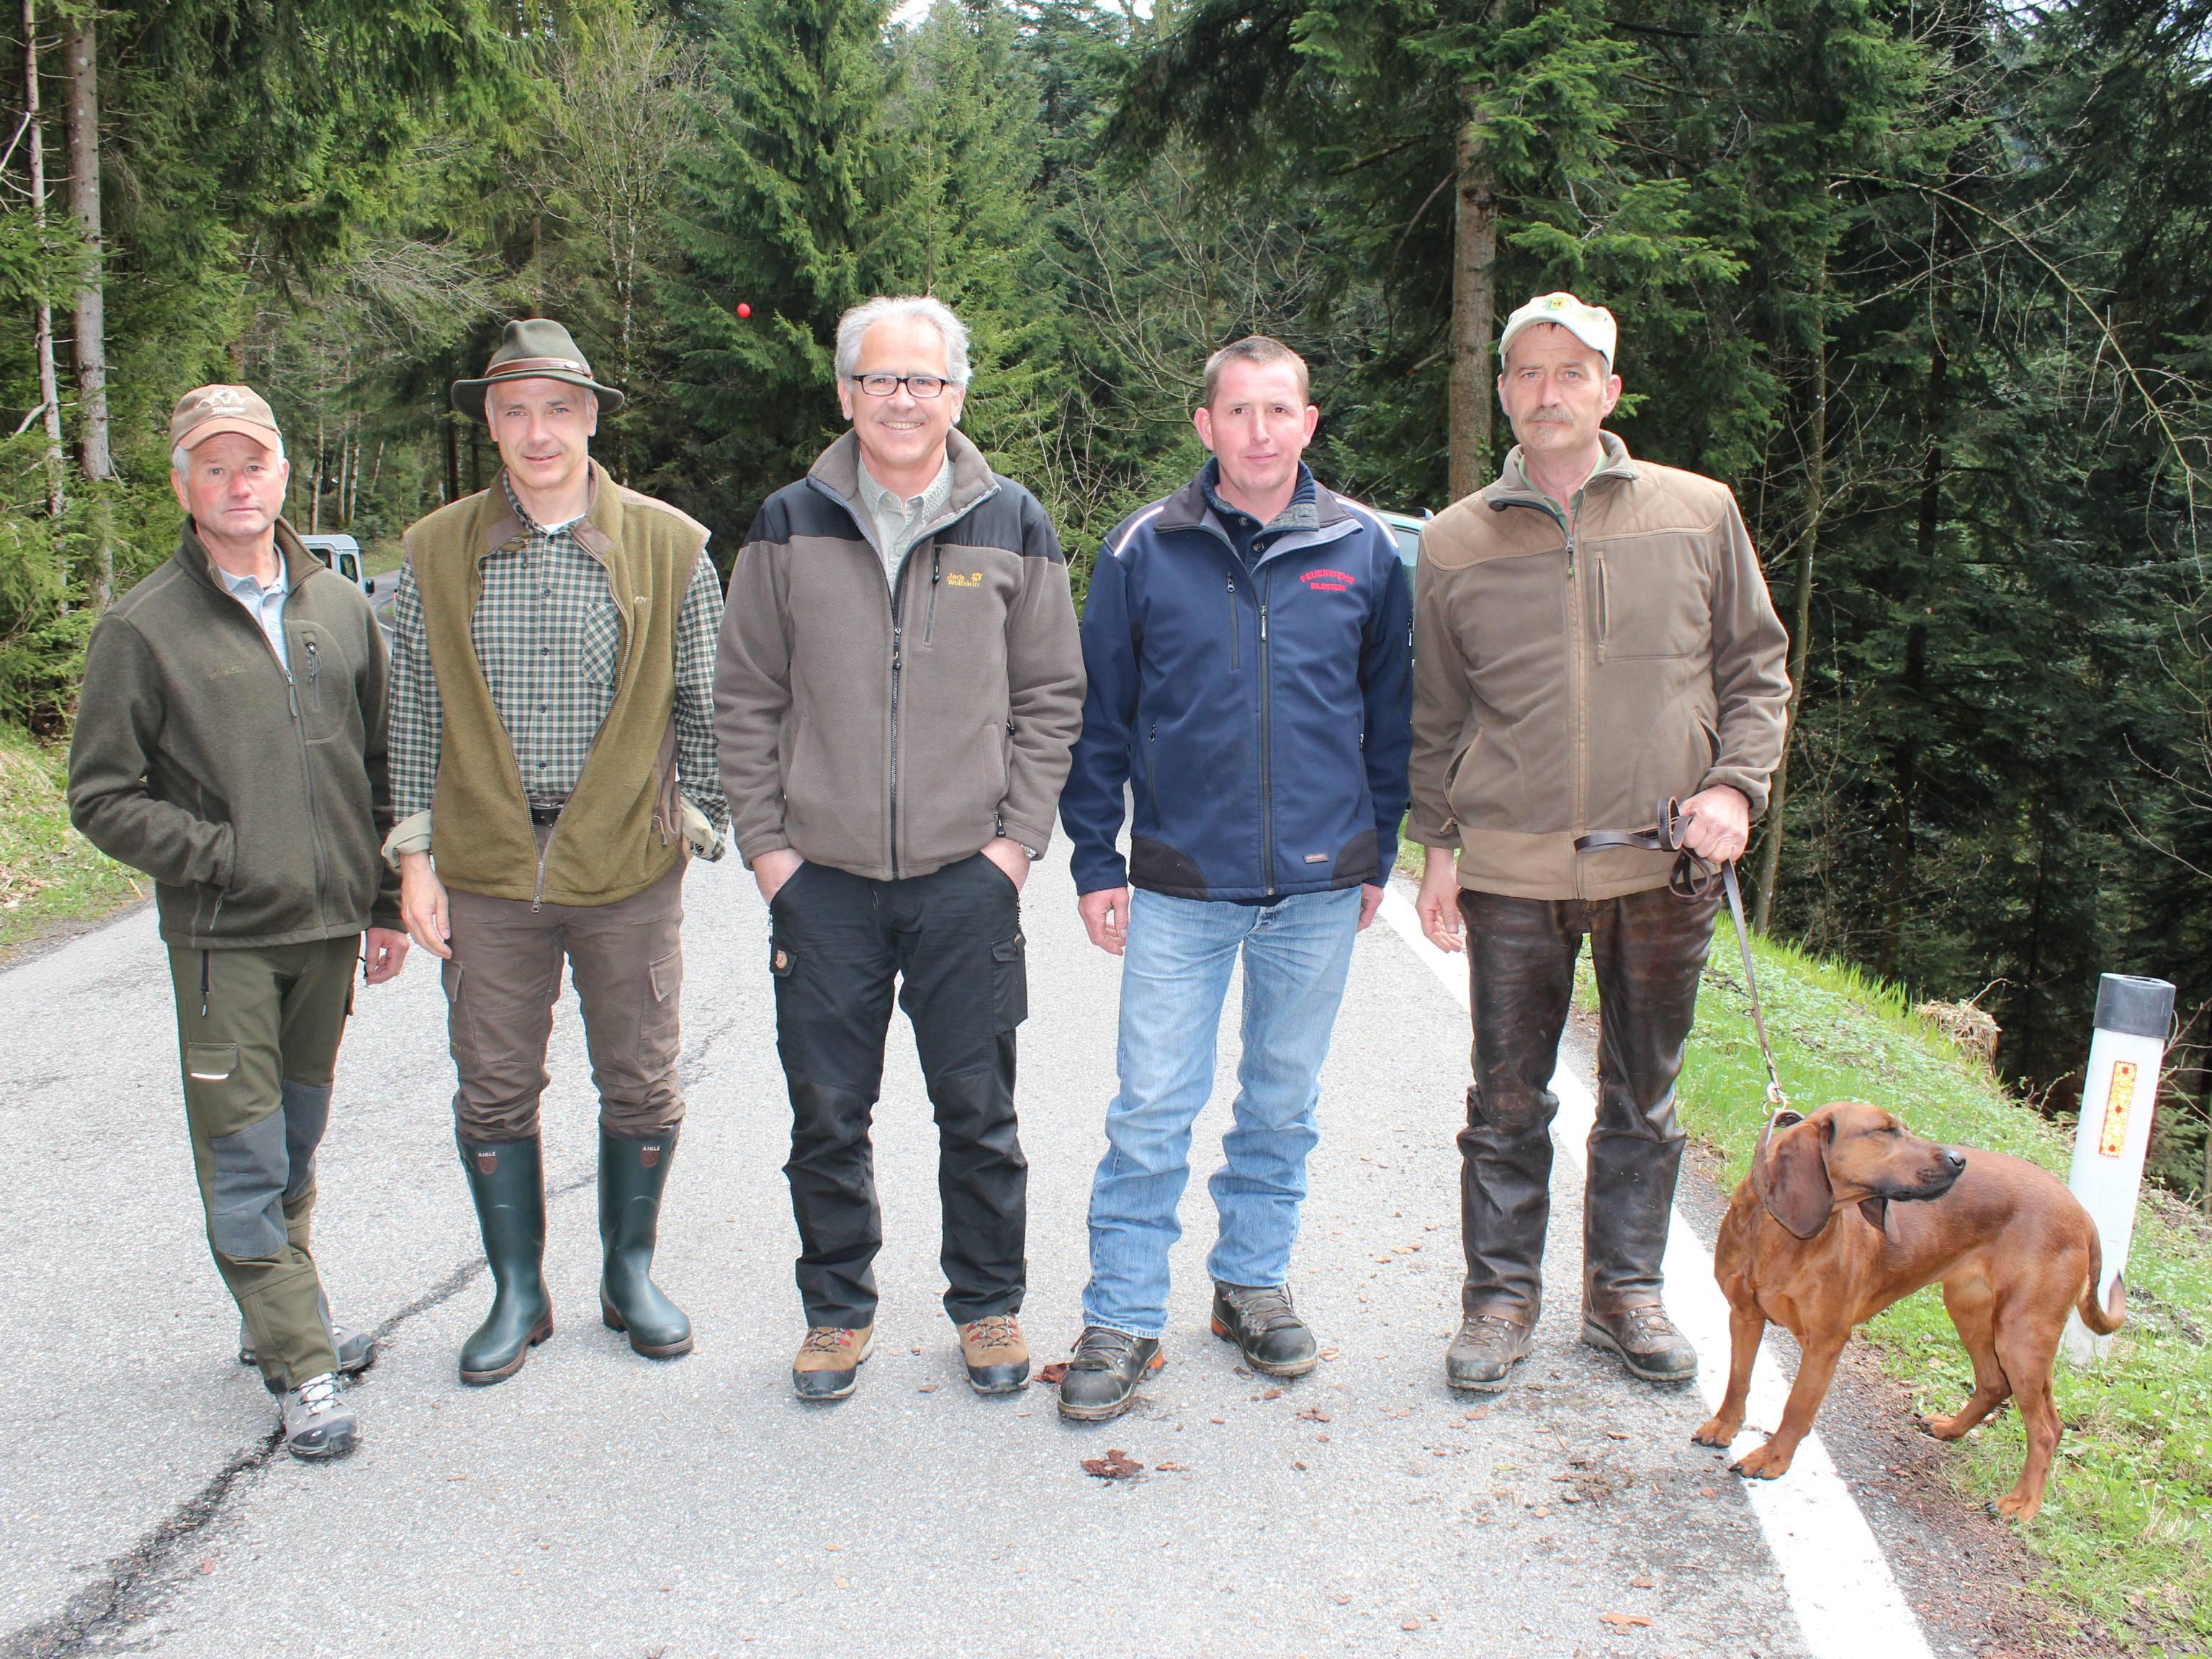 Gebhard Vögel, Andreas Germann, Christof Germann, Kurt Winder und Peter Greber.